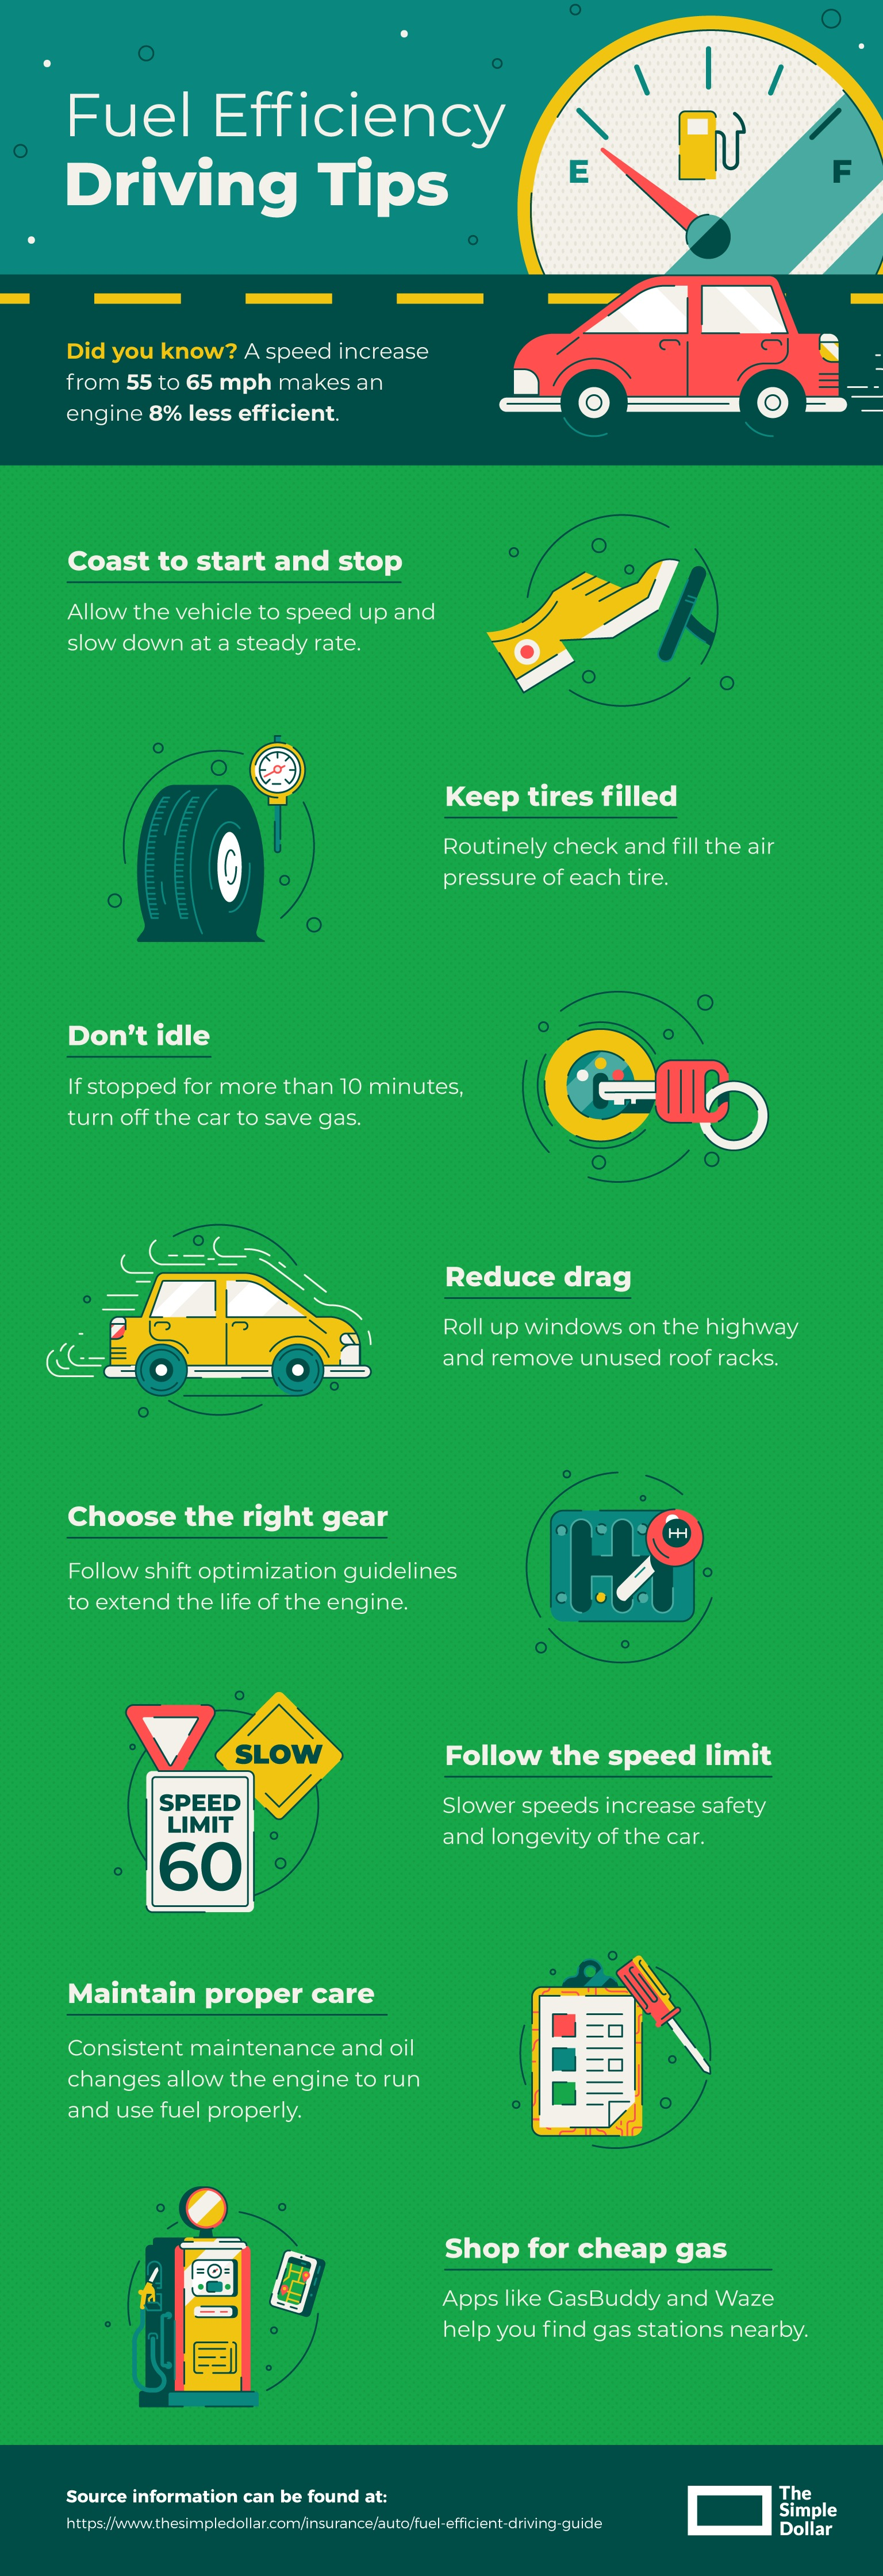 Fuel efficiency driving tips